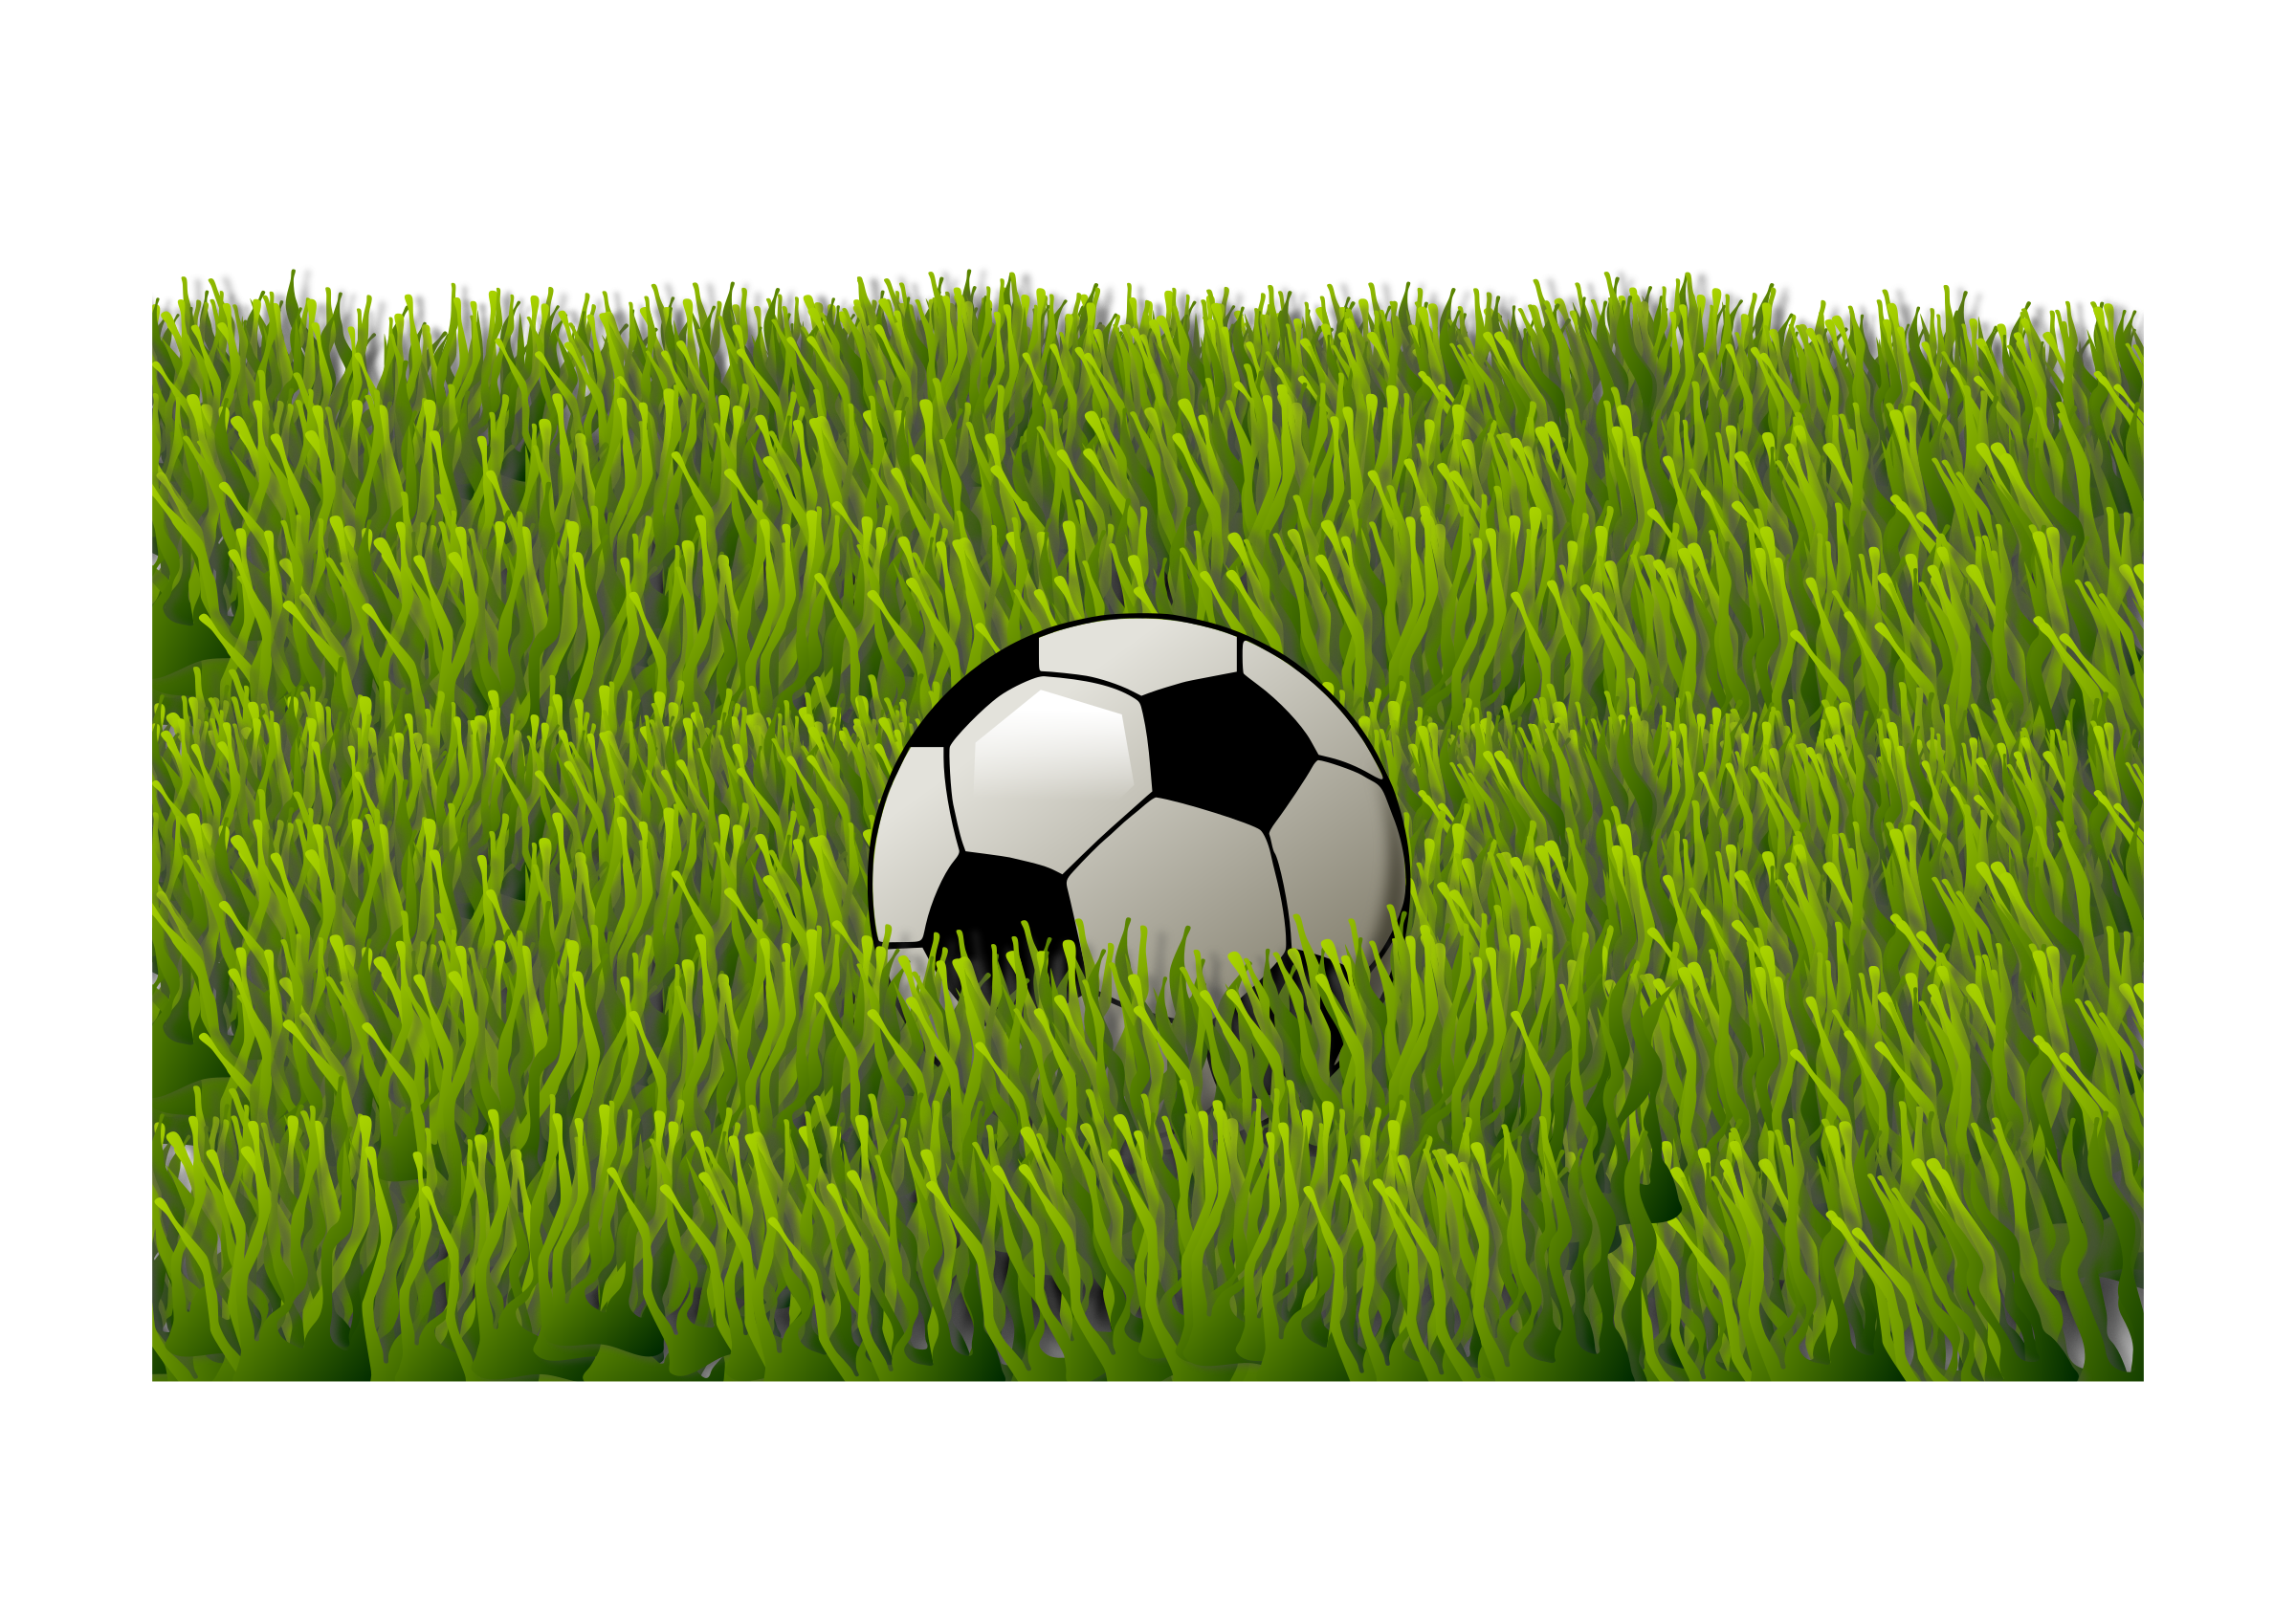 Soccer ball on grass by Almeidah